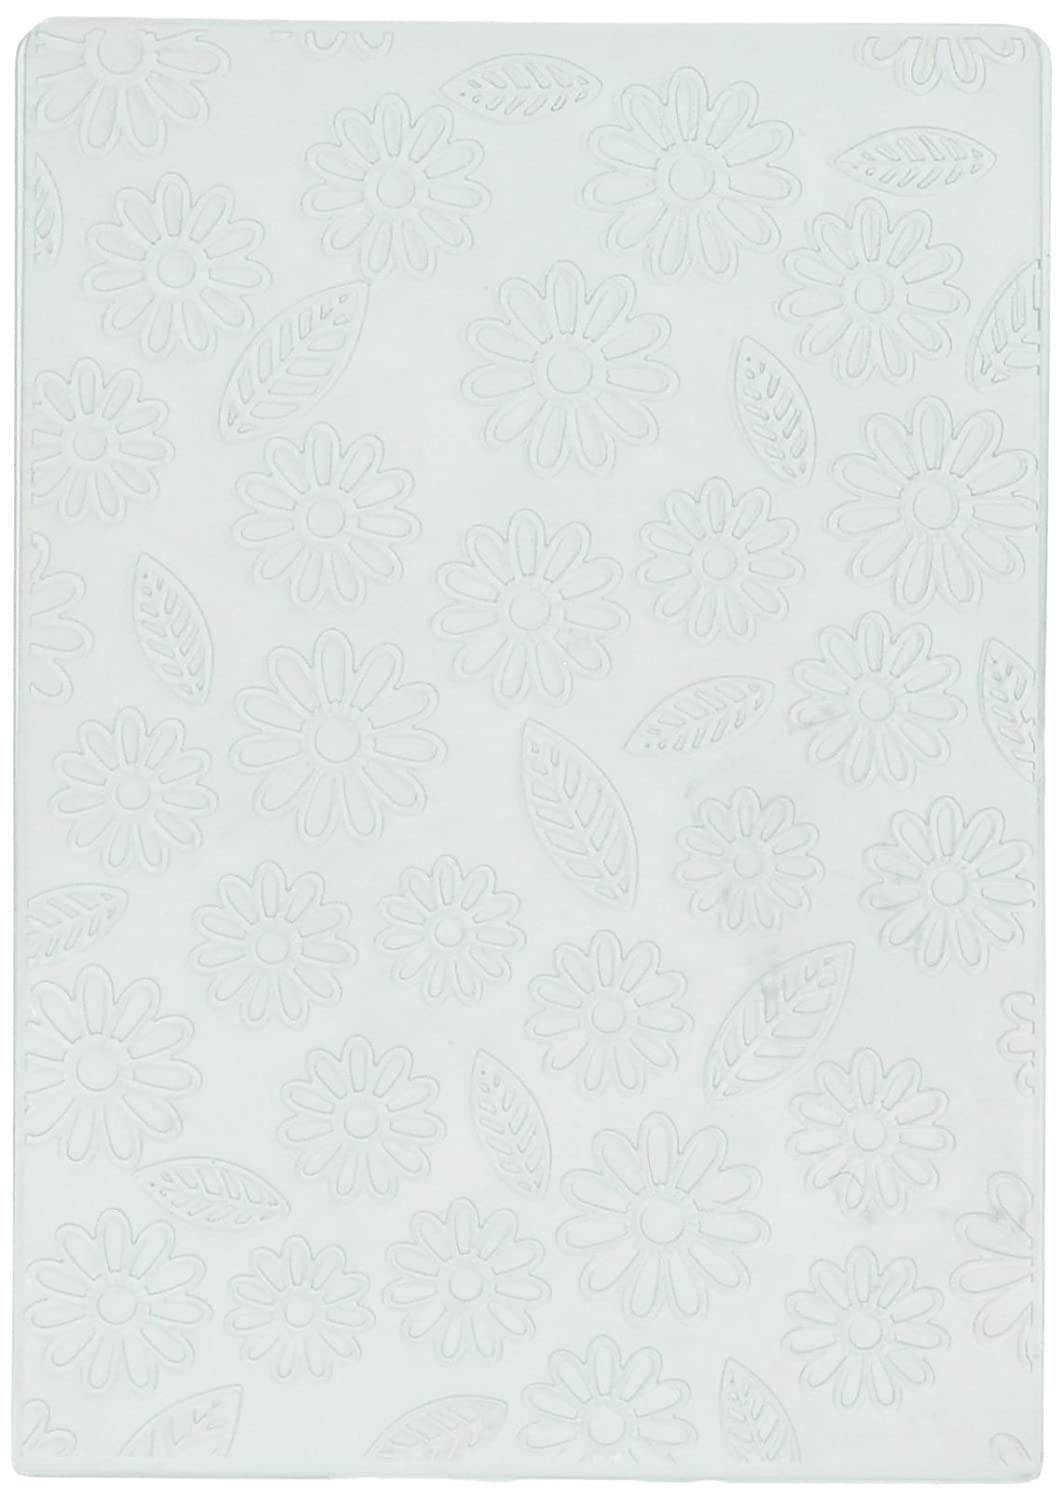 Nellies Choice Embossing Folders Flowers and Leaves